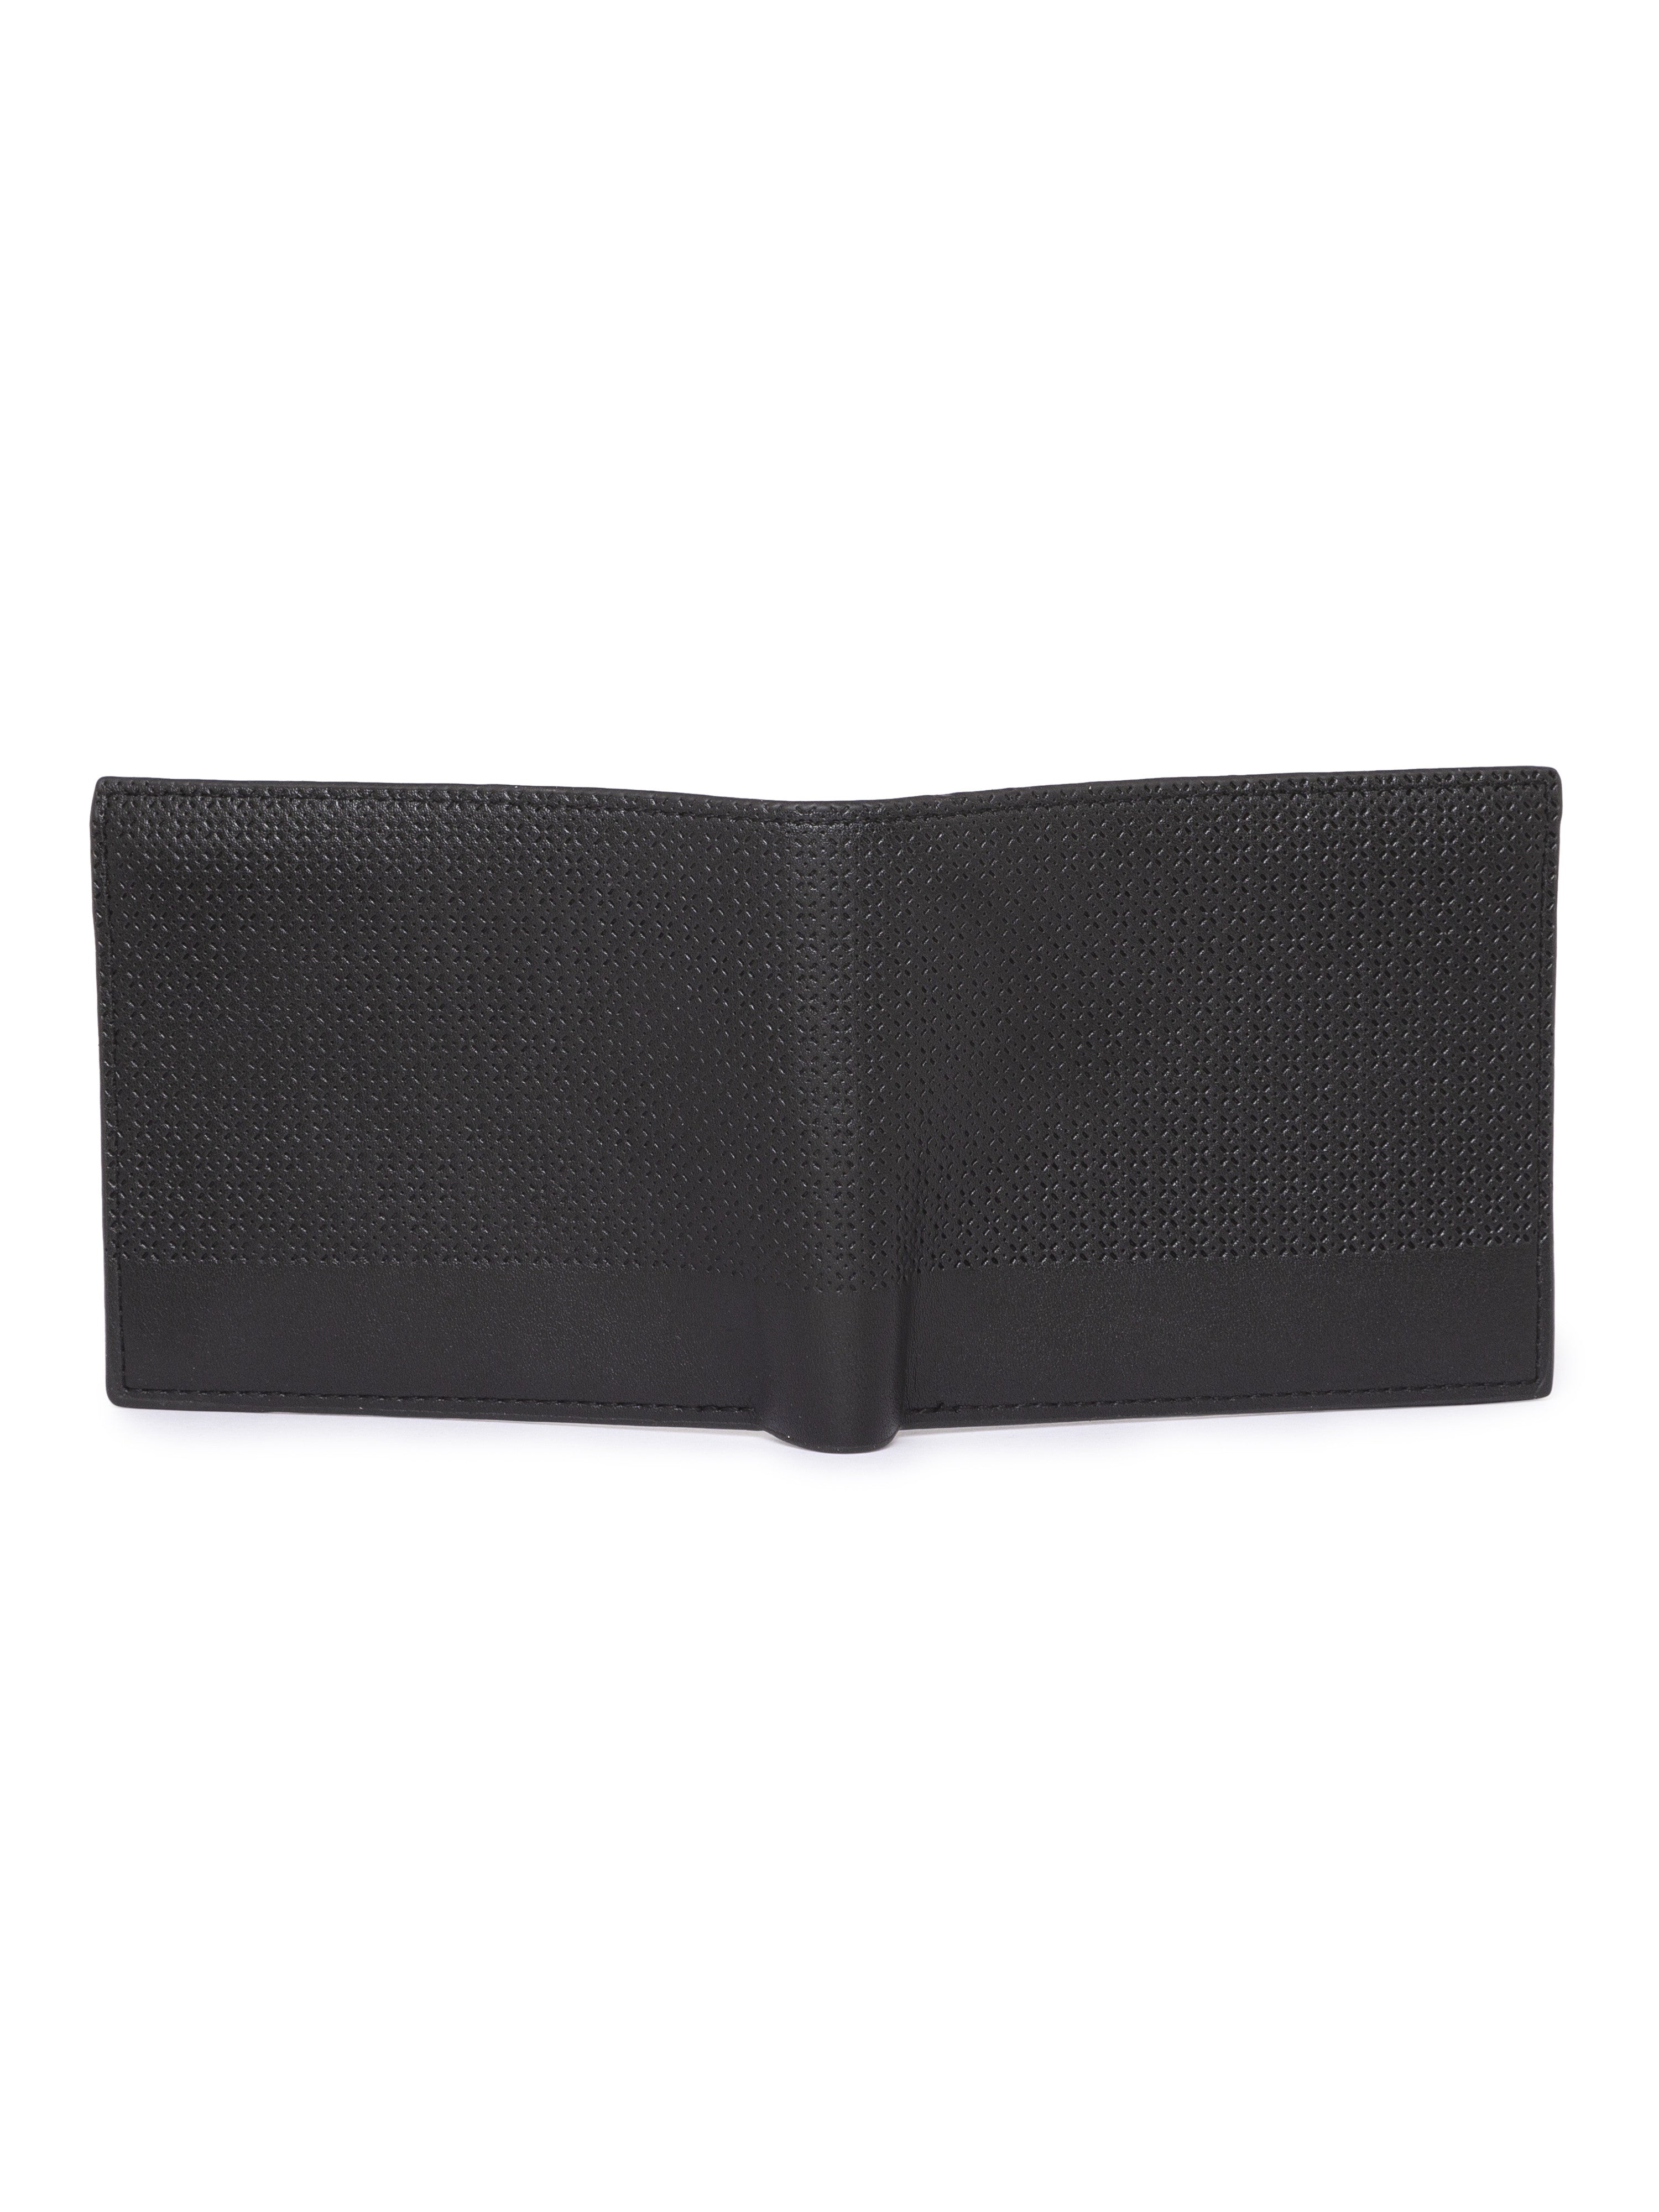 Cut Work Black Wallet-4